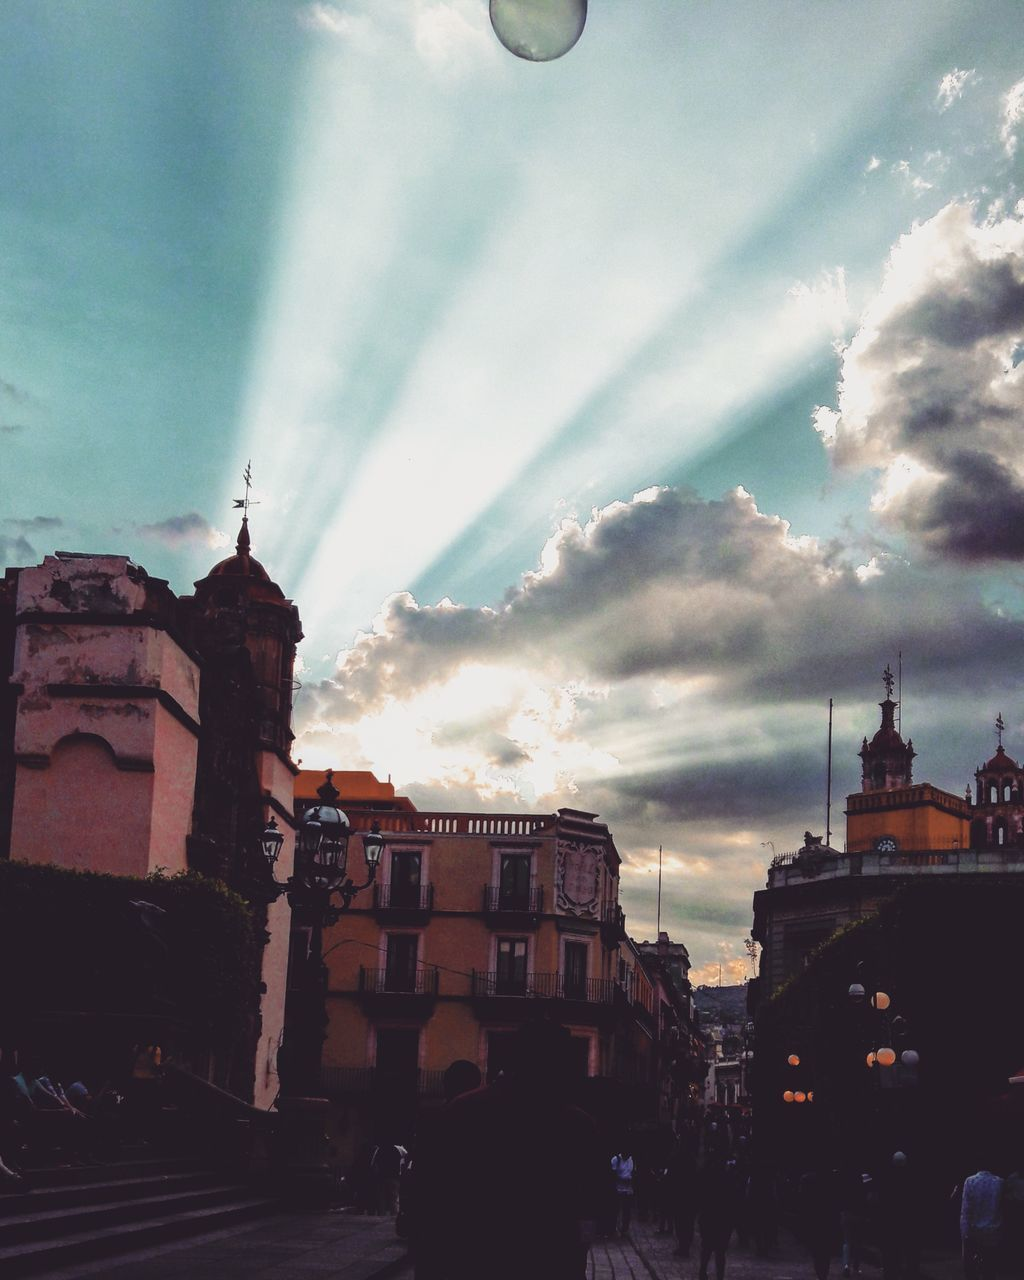 architecture, building exterior, built structure, sky, cloud - sky, city, outdoors, no people, day